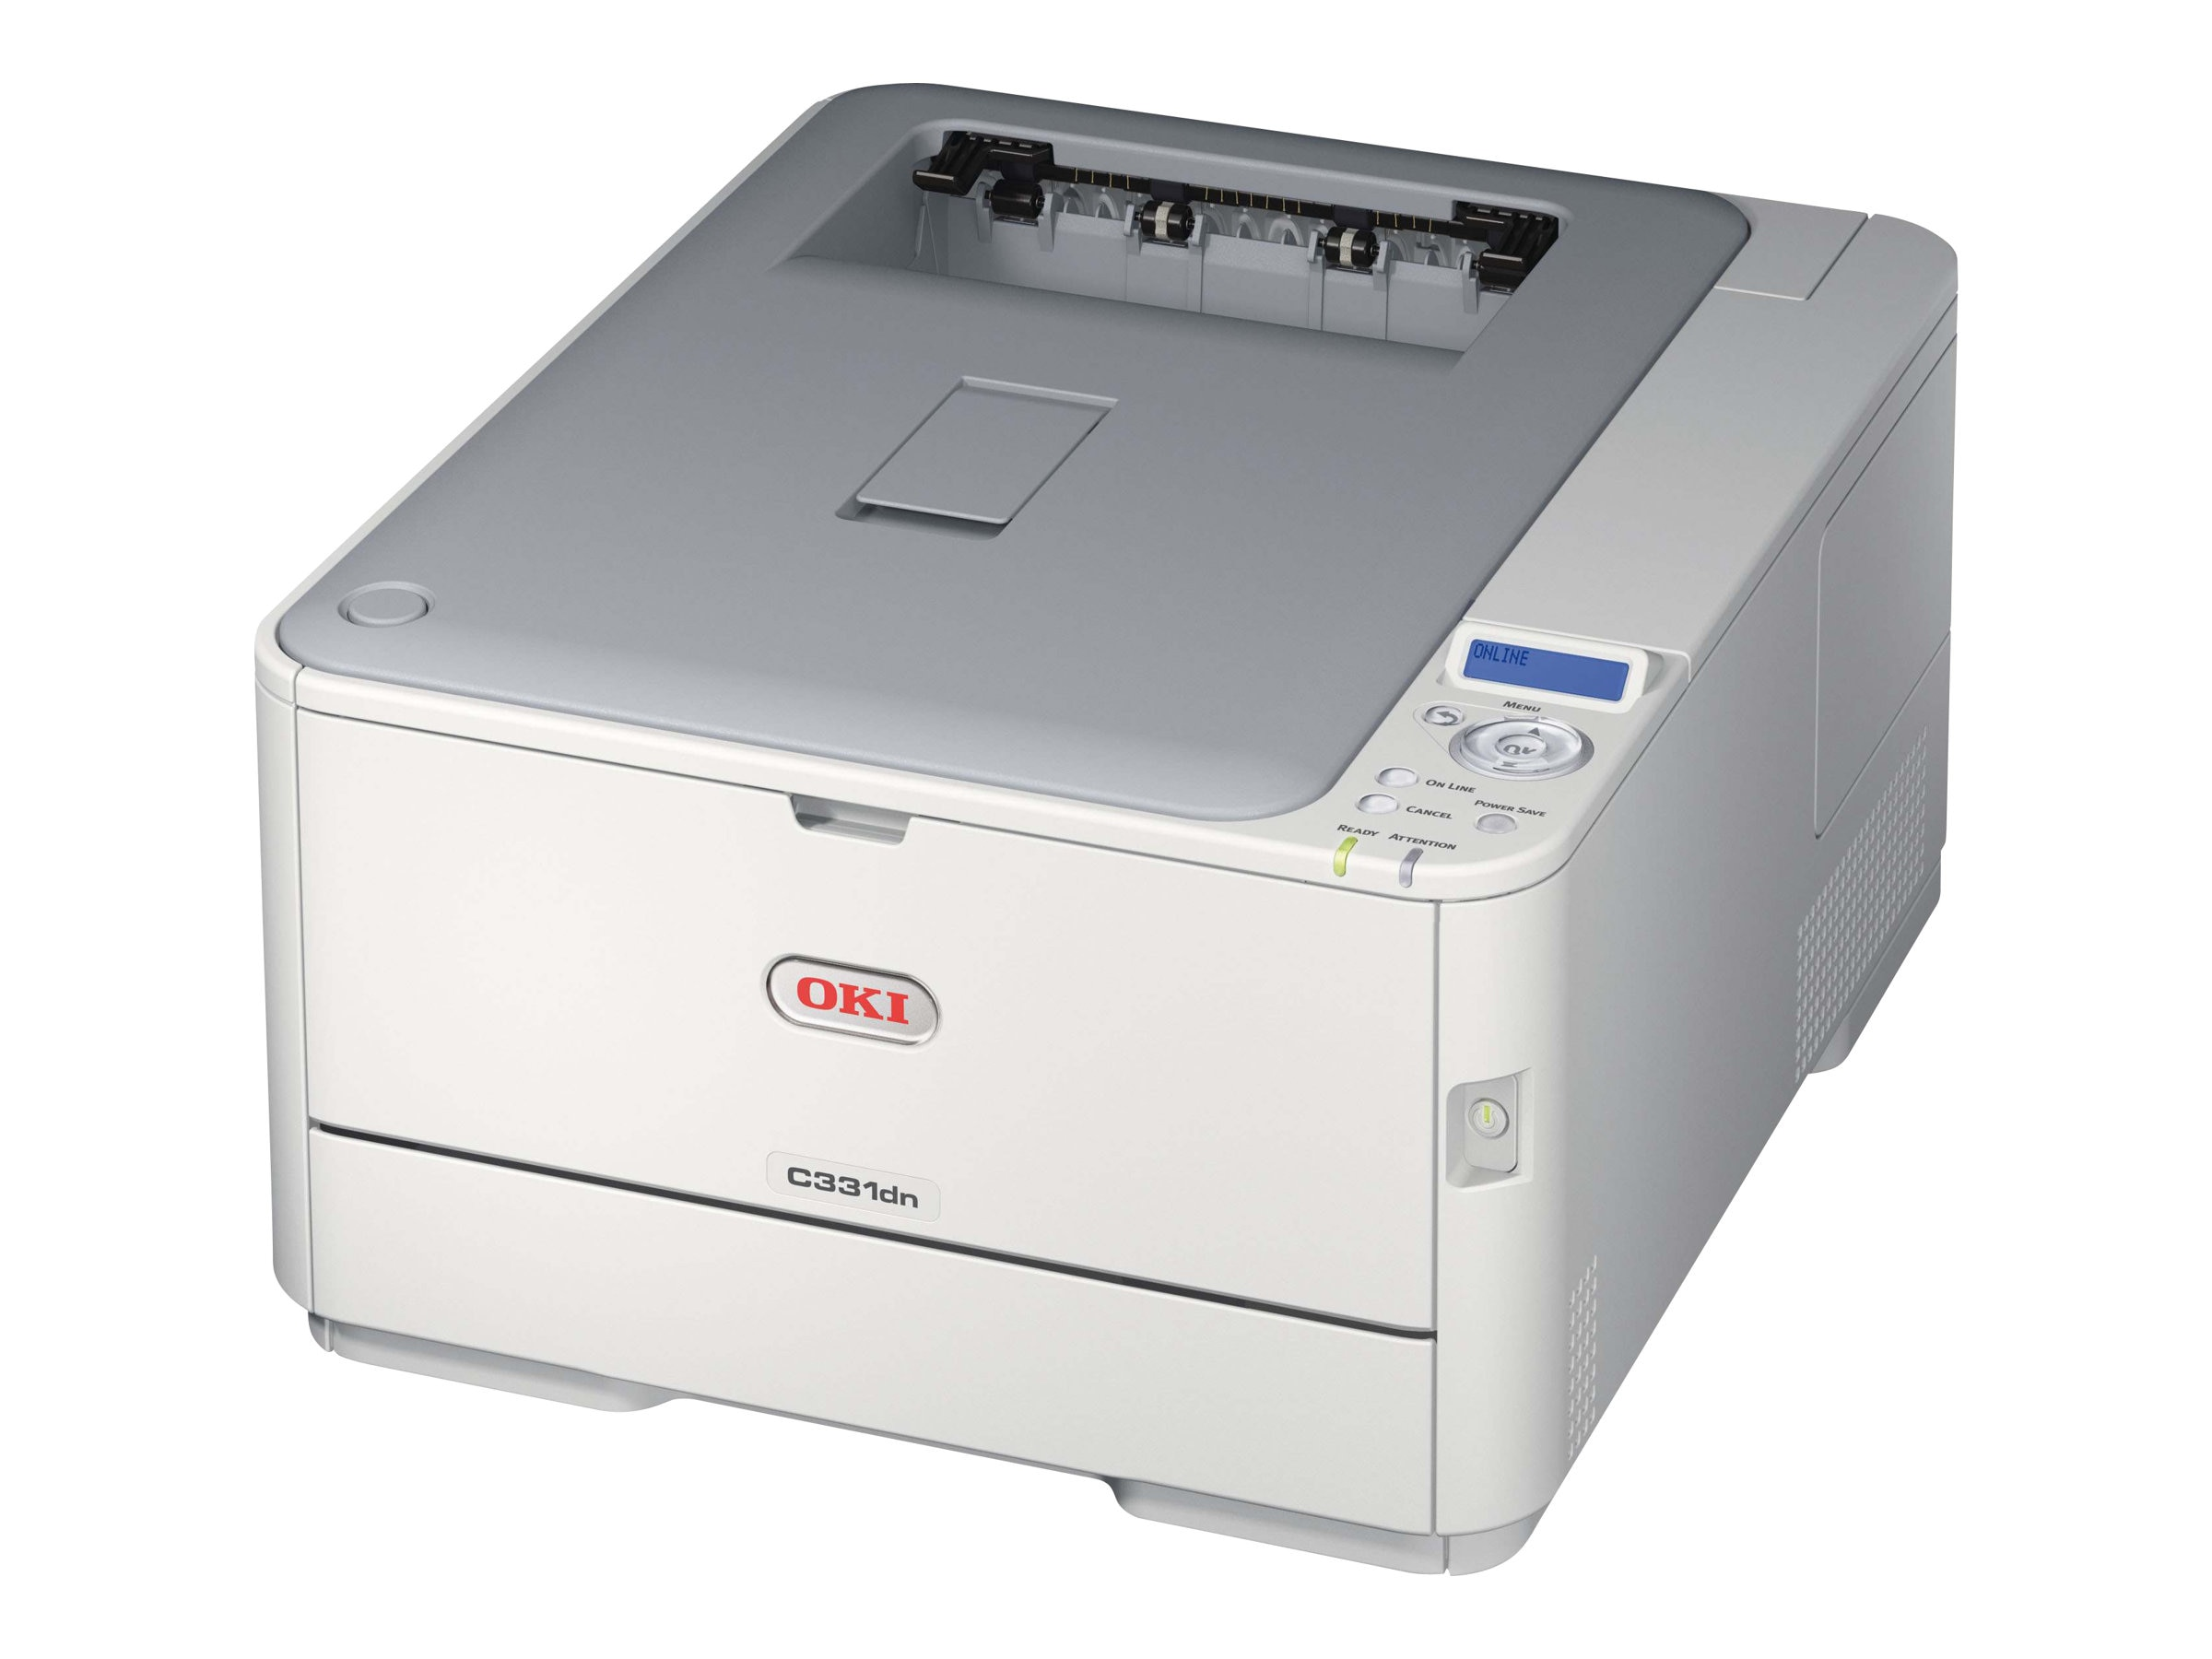 Oki C331dn Digital Color Printer, 62443601, 15914964, Printers - Laser & LED (color)